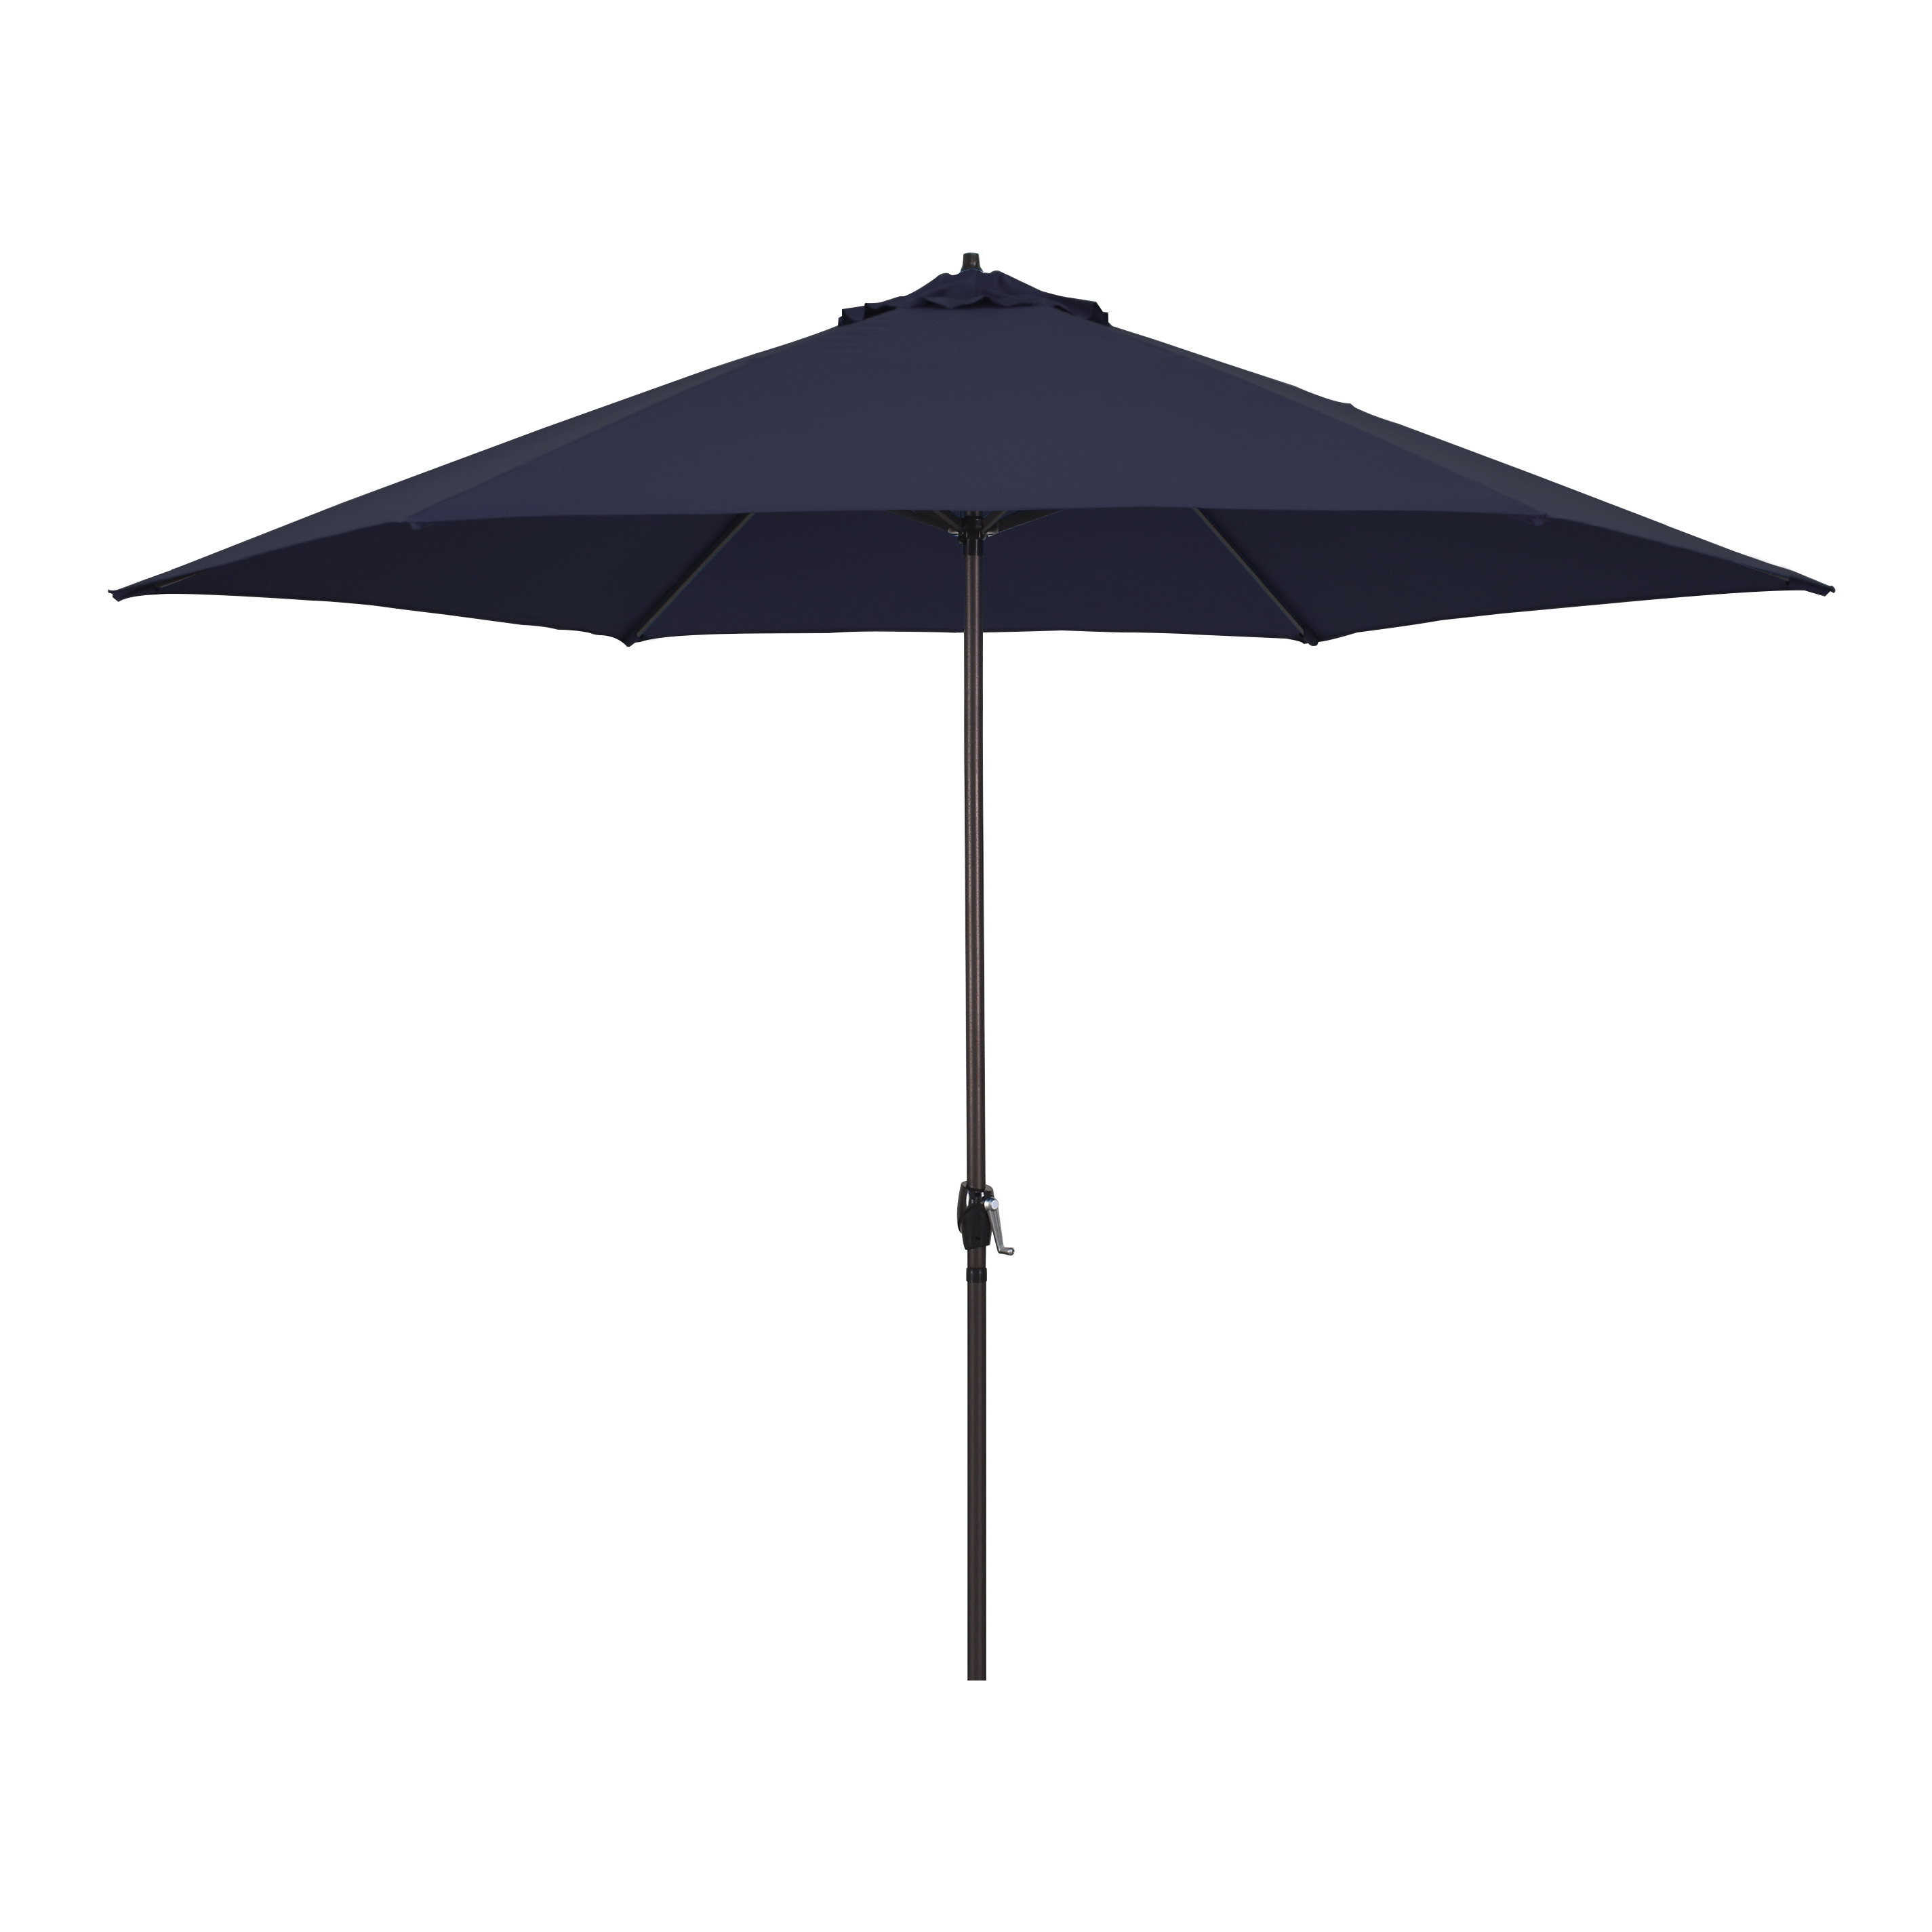 Mcdougal 11' Market Umbrella In Trendy Artrip Market Umbrellas (View 12 of 20)